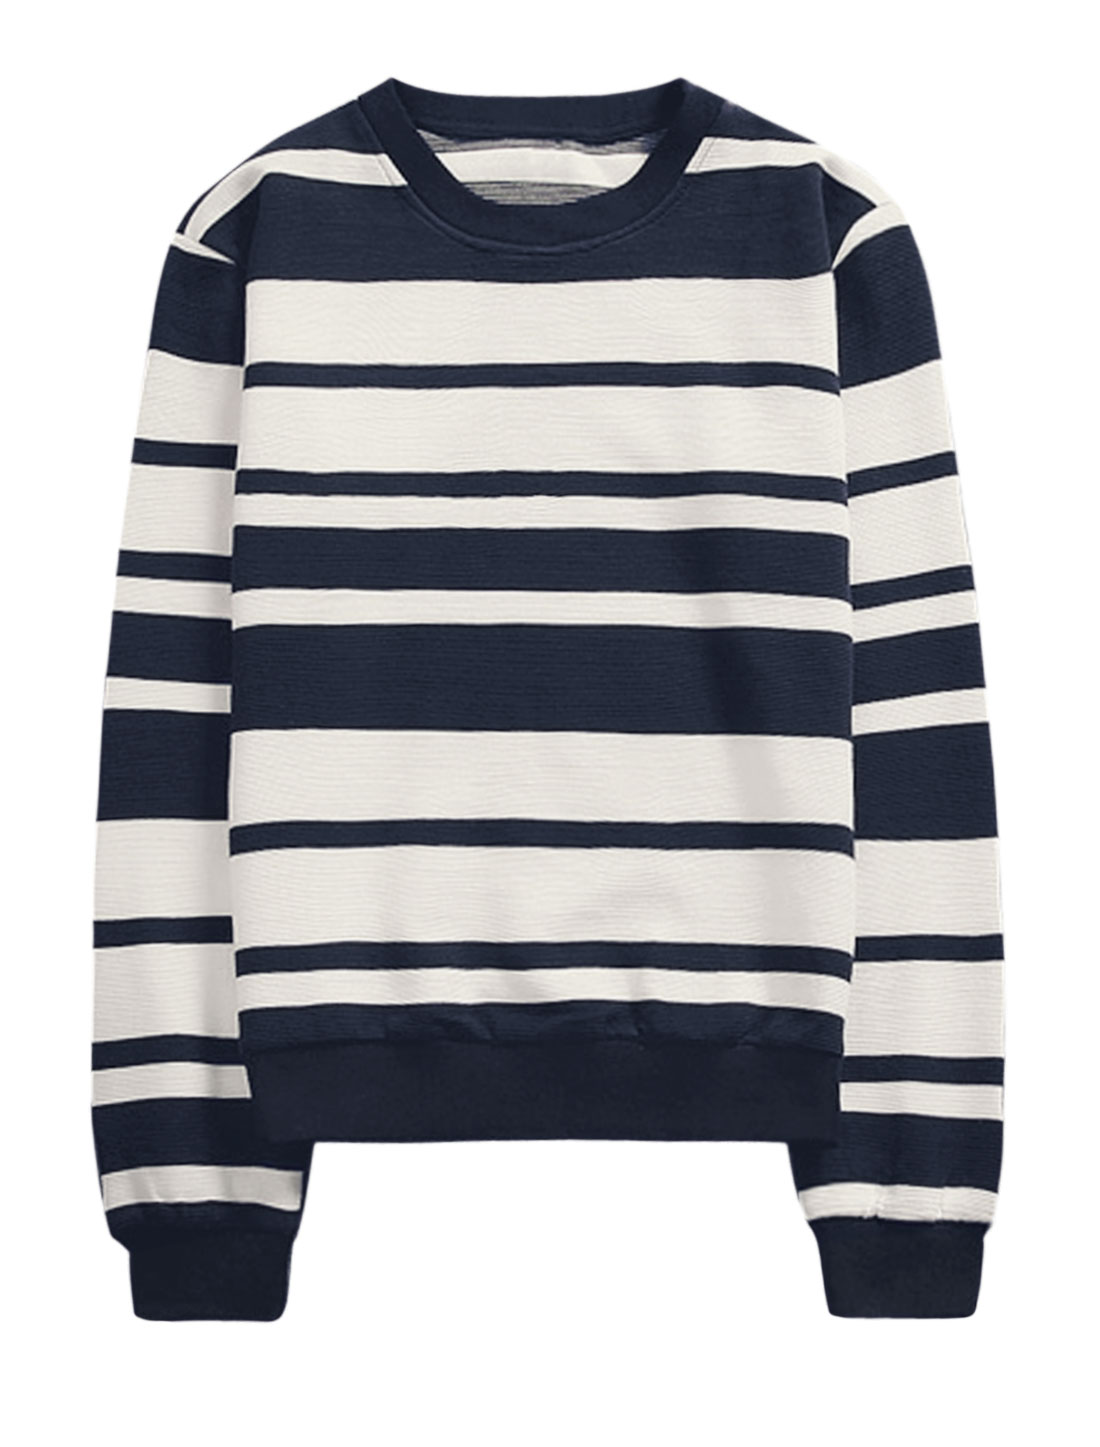 Men Long Sleeves Stripes Prints Casual Slim Fit Crew Neck T-Shirt Blue White M